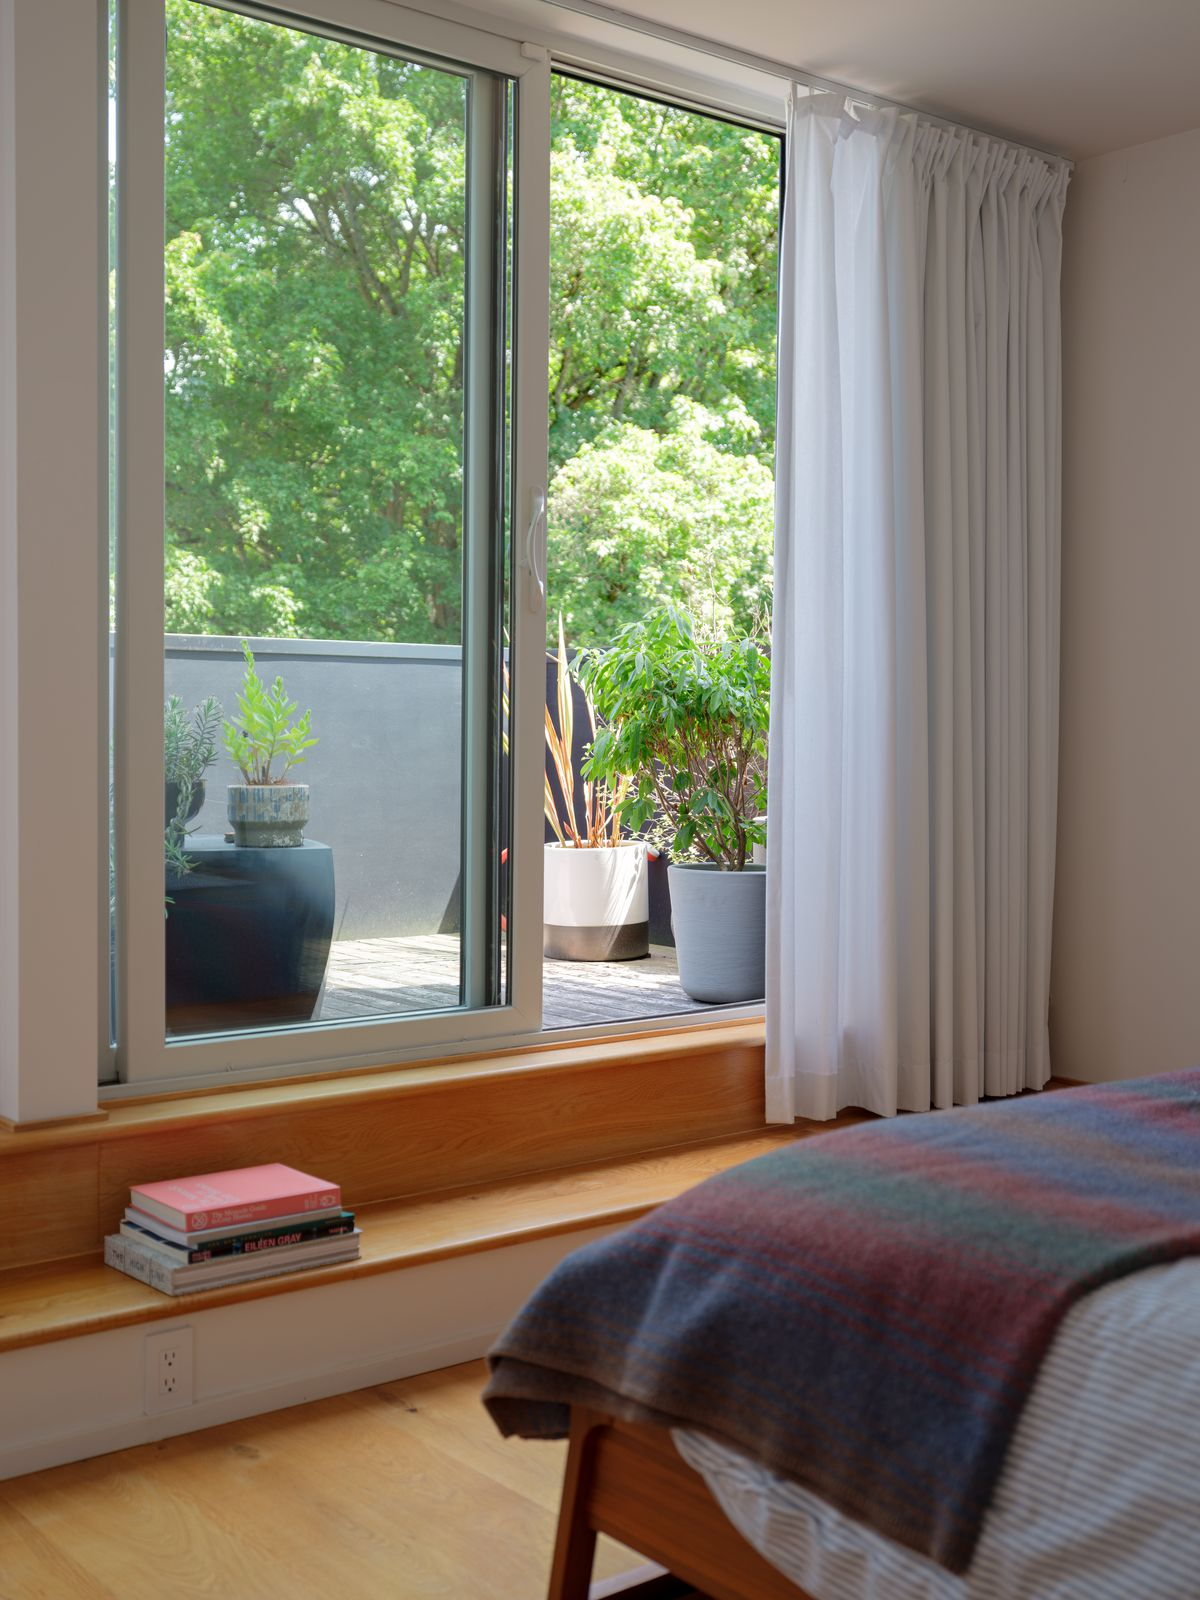 A bedroom area with a bed that has a colorful patterned blanket. There are glass doors with a view overlooking a patio with multiple potted plants. There is a step that has a pile of books stacked on it.